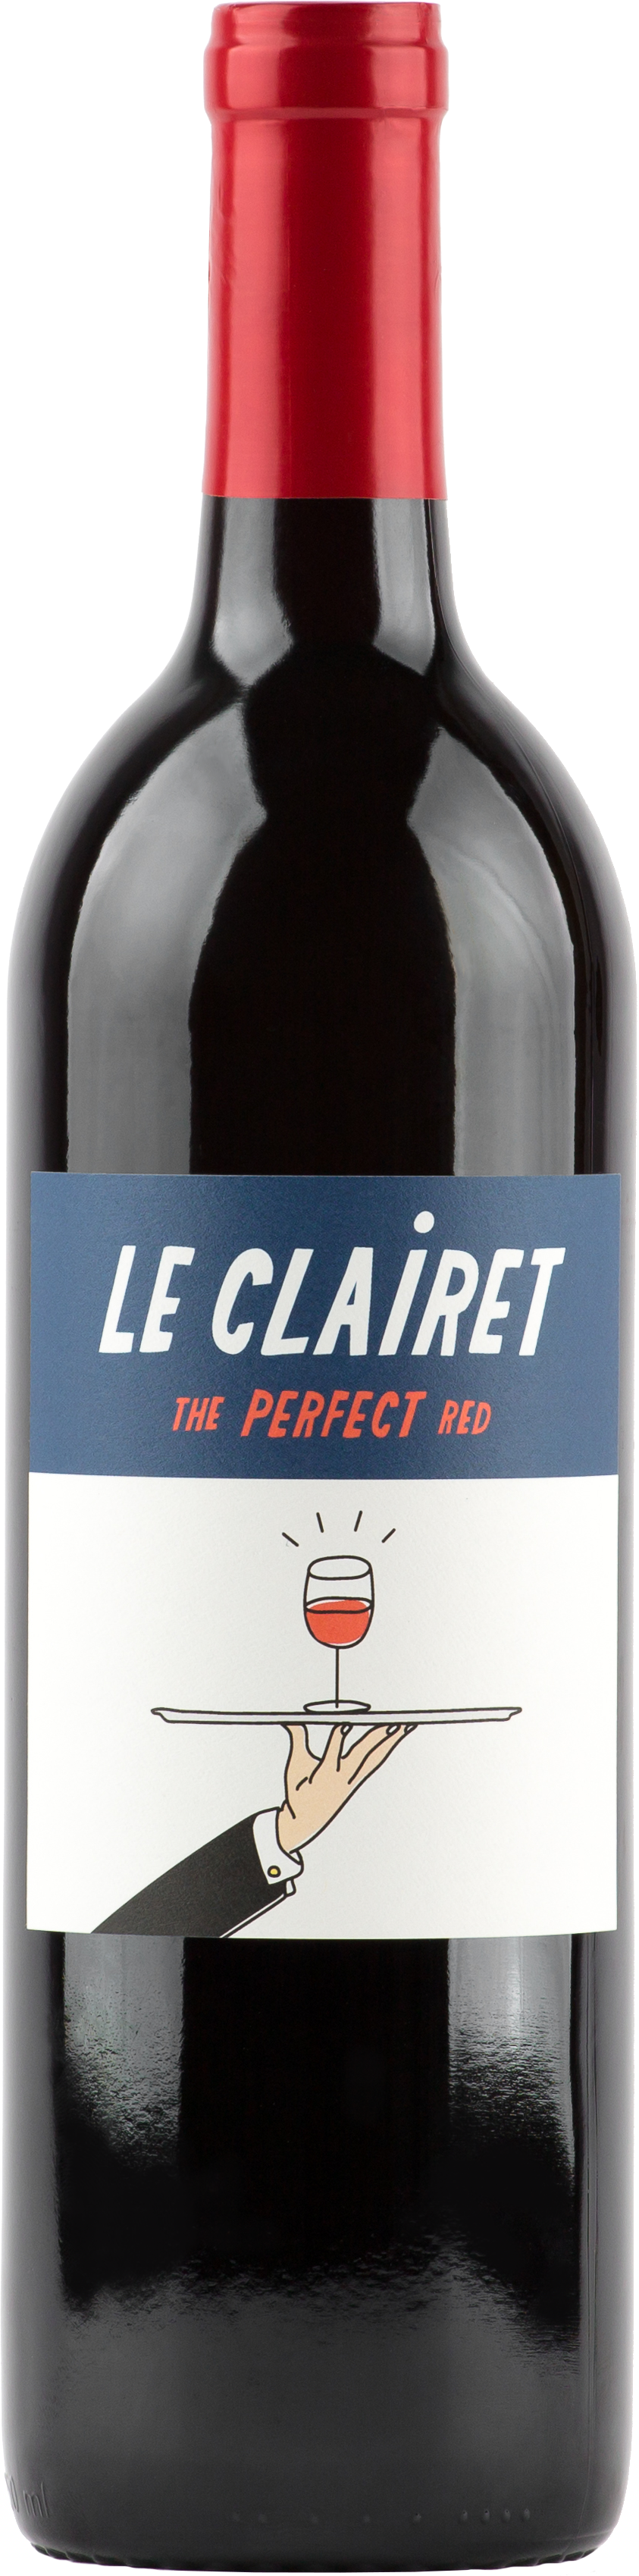 Le Clairet The Perfect Red.png